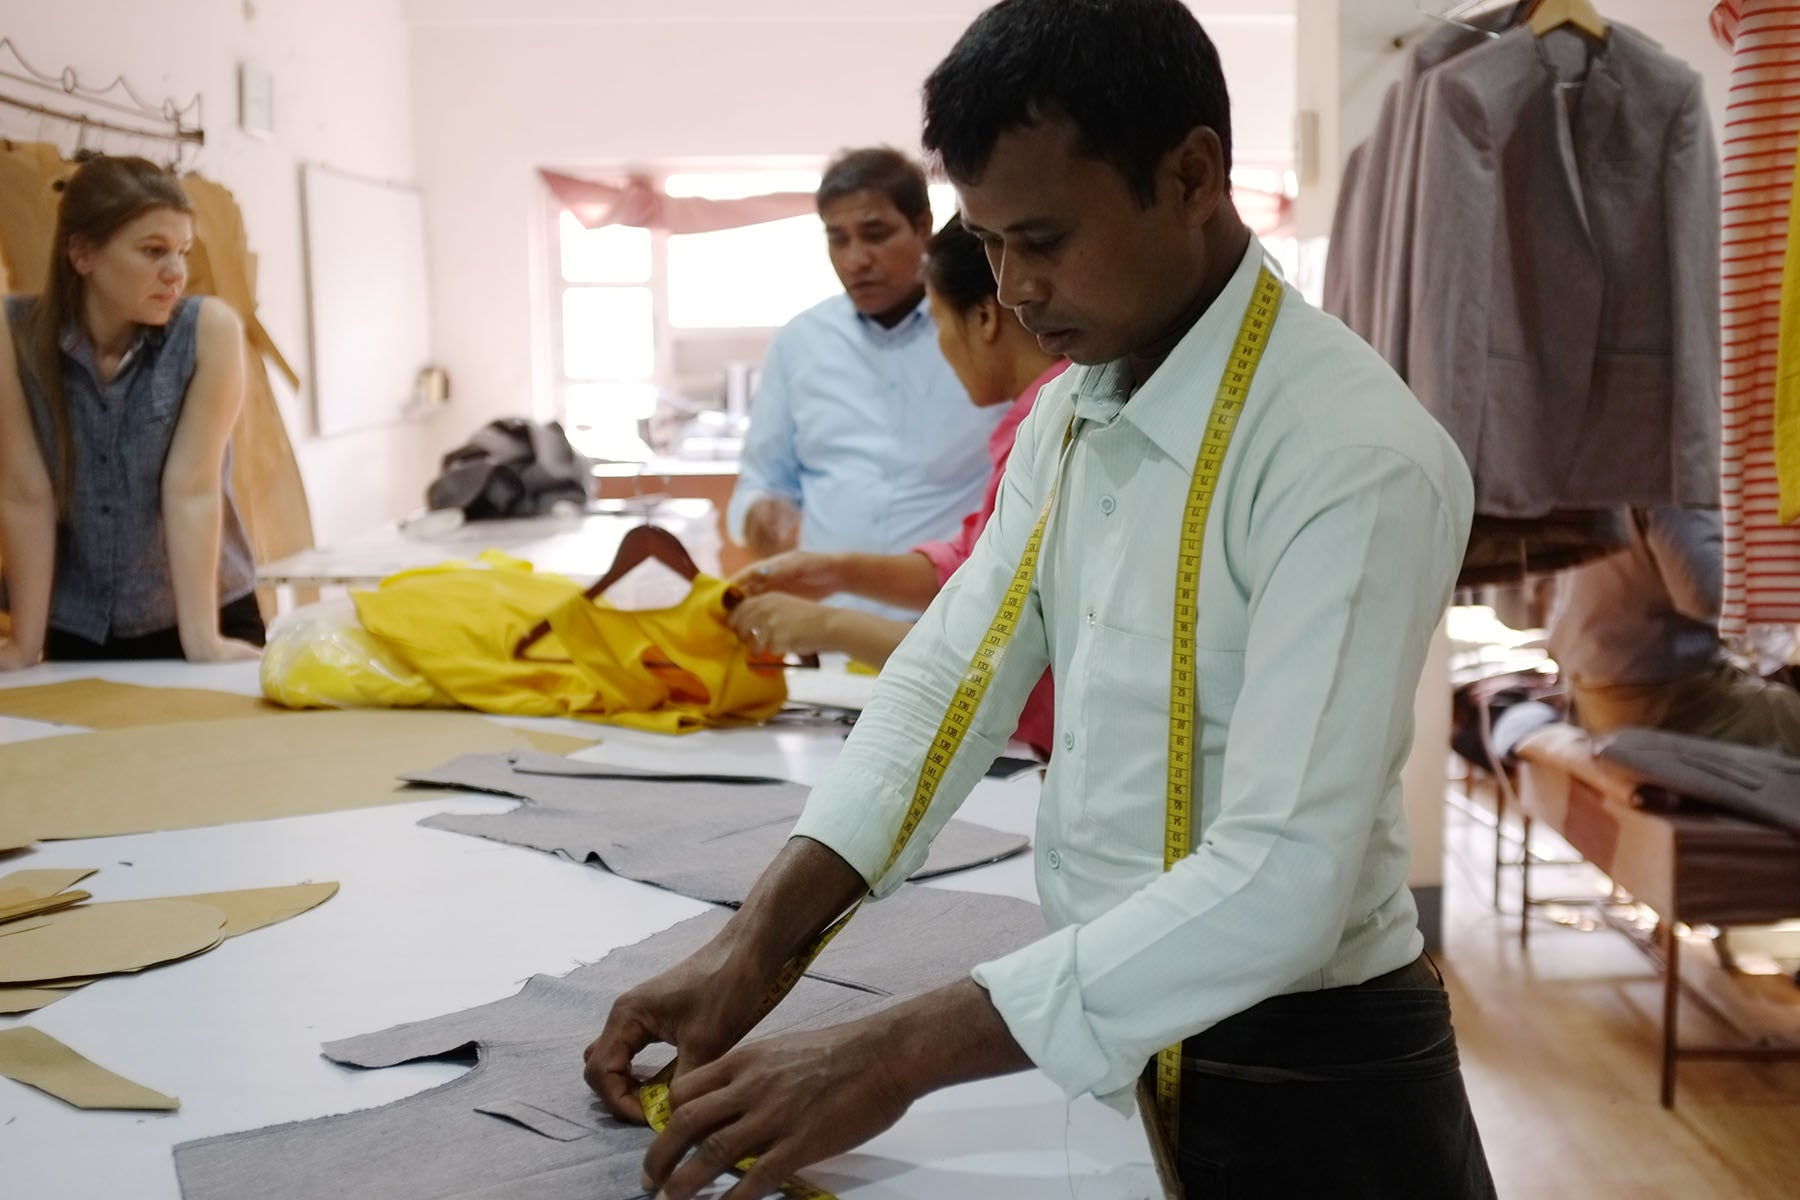 tailor measuring clothing